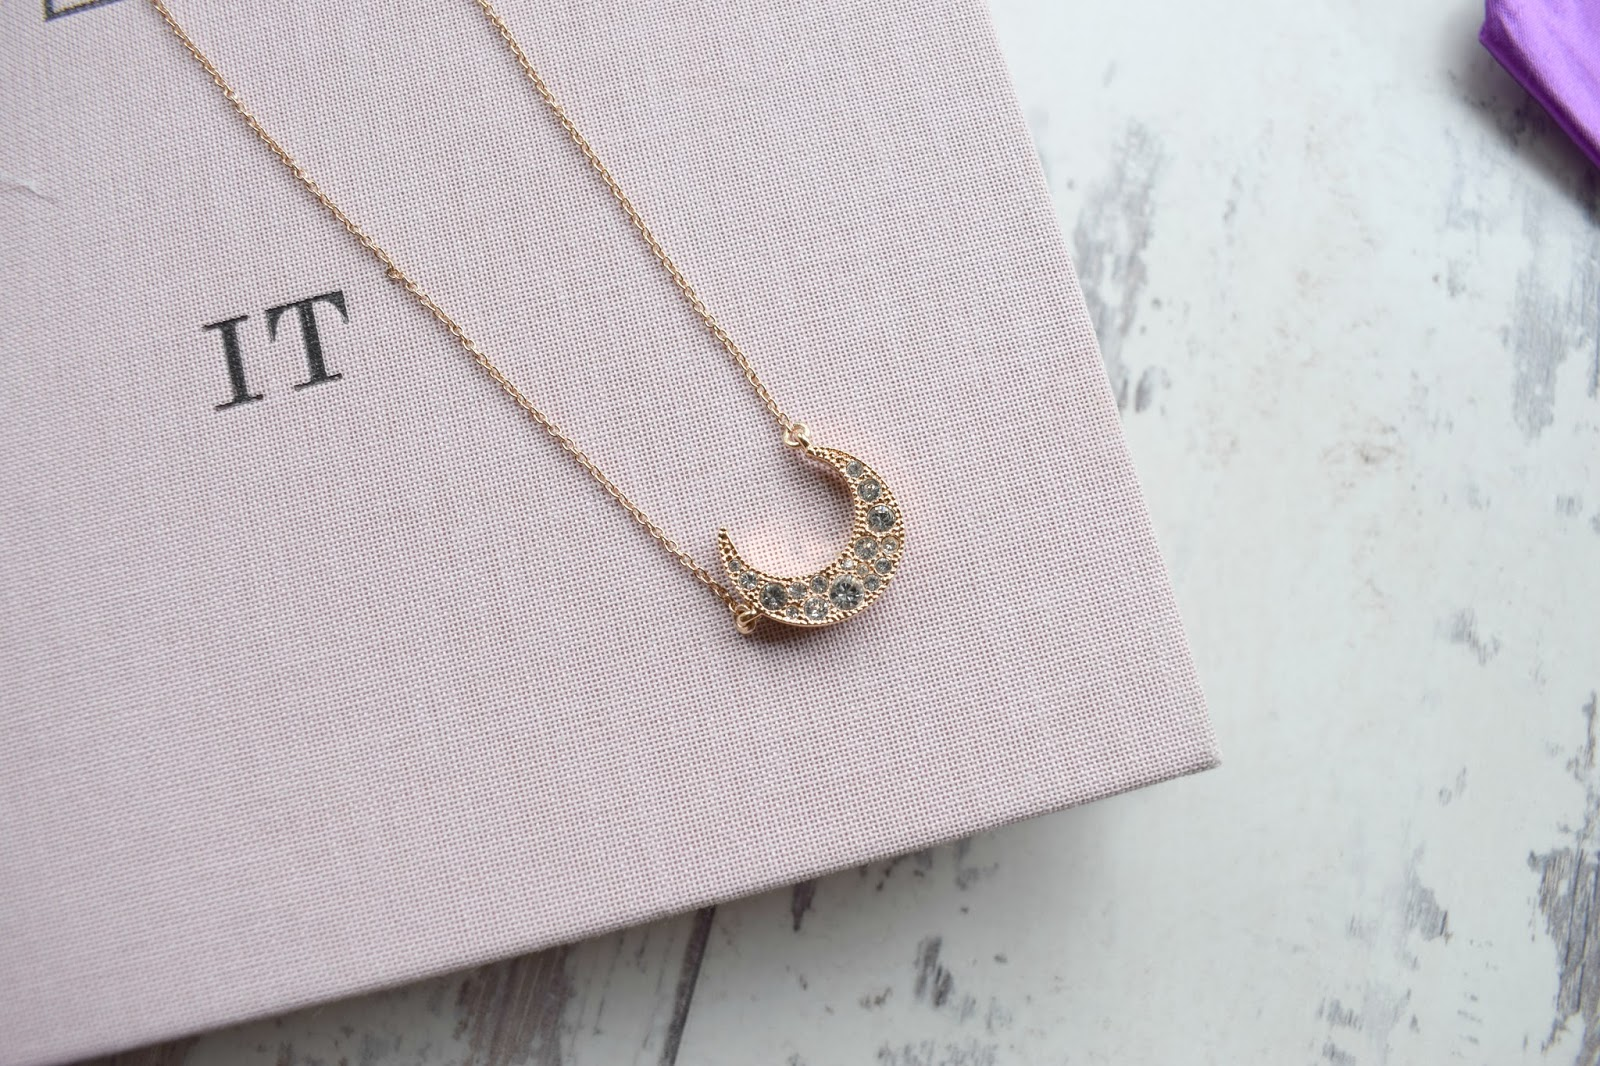 Just Between Us crescent moon necklace, Jewellery Review UK Personalised necklaces, bracelets etc